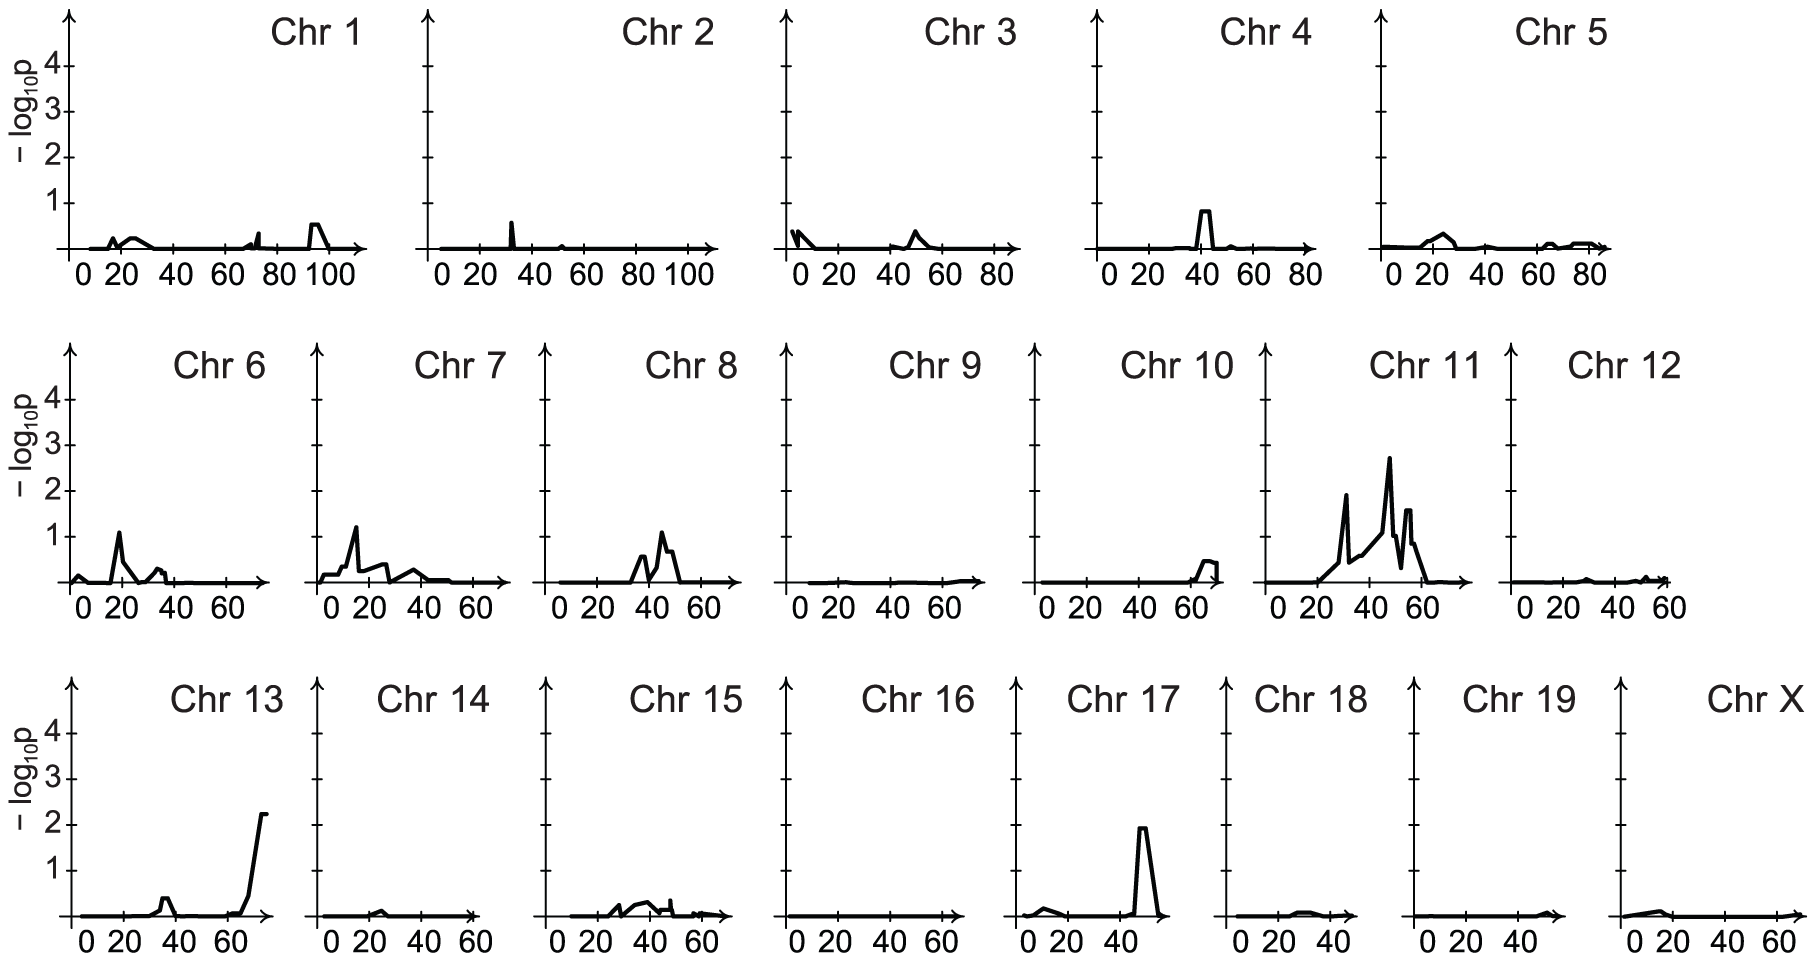 Linkage analysis of late spleen bacillary counts contingent on the chromosome 1 locus.